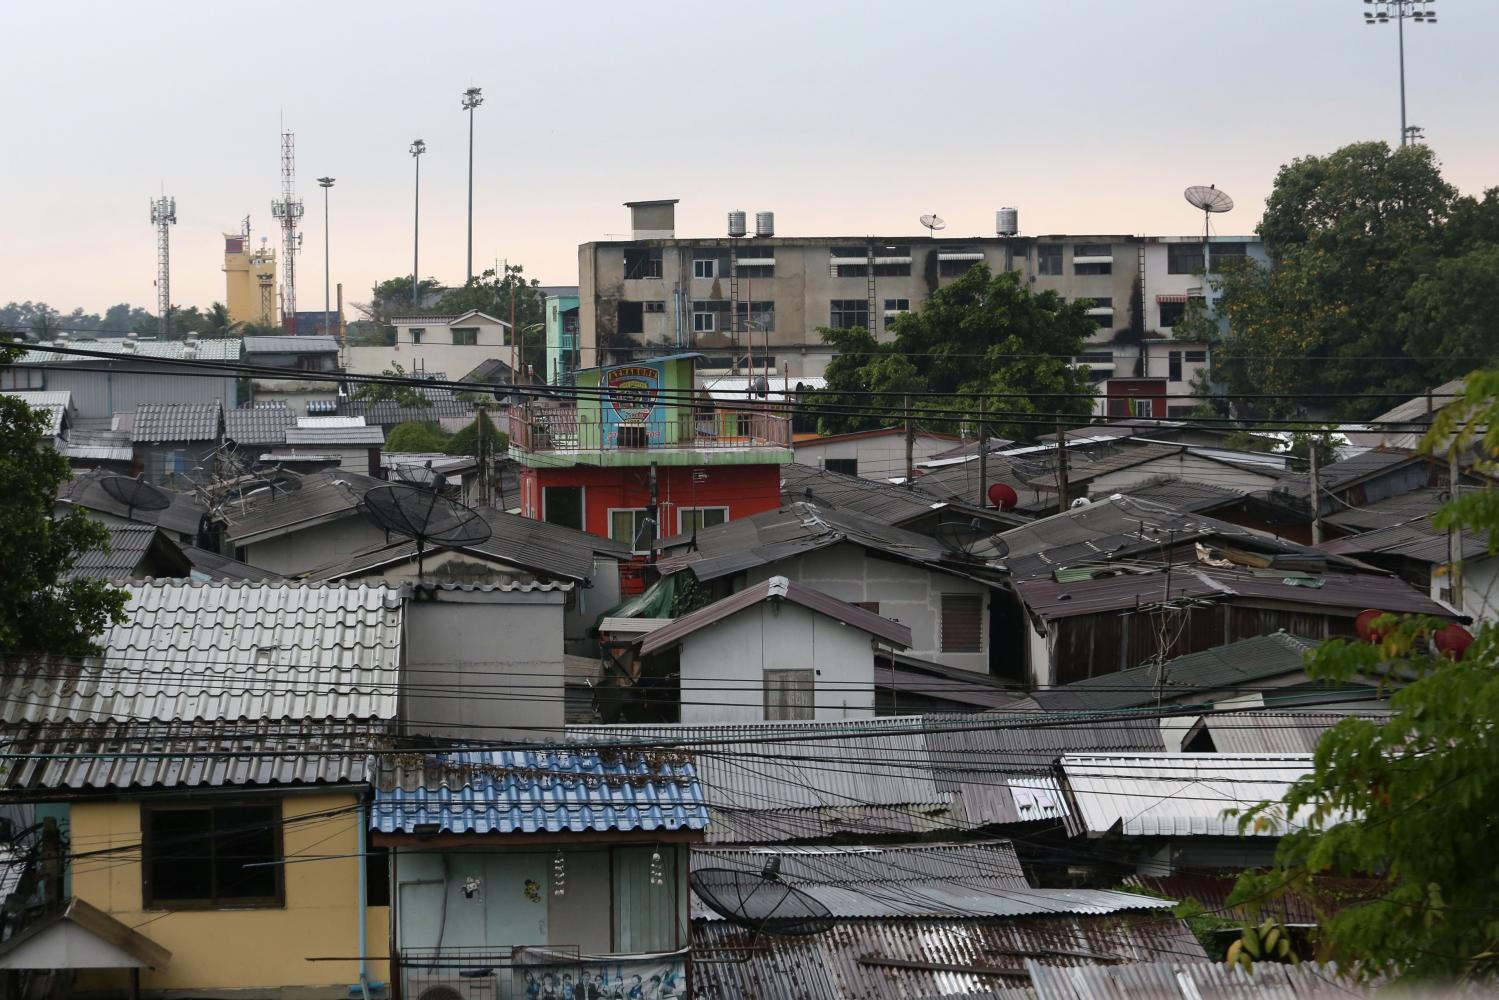 The Kloen Toey slum, with up to 1.2 million dwellers, is a new hotbed for Covid-19 infections.